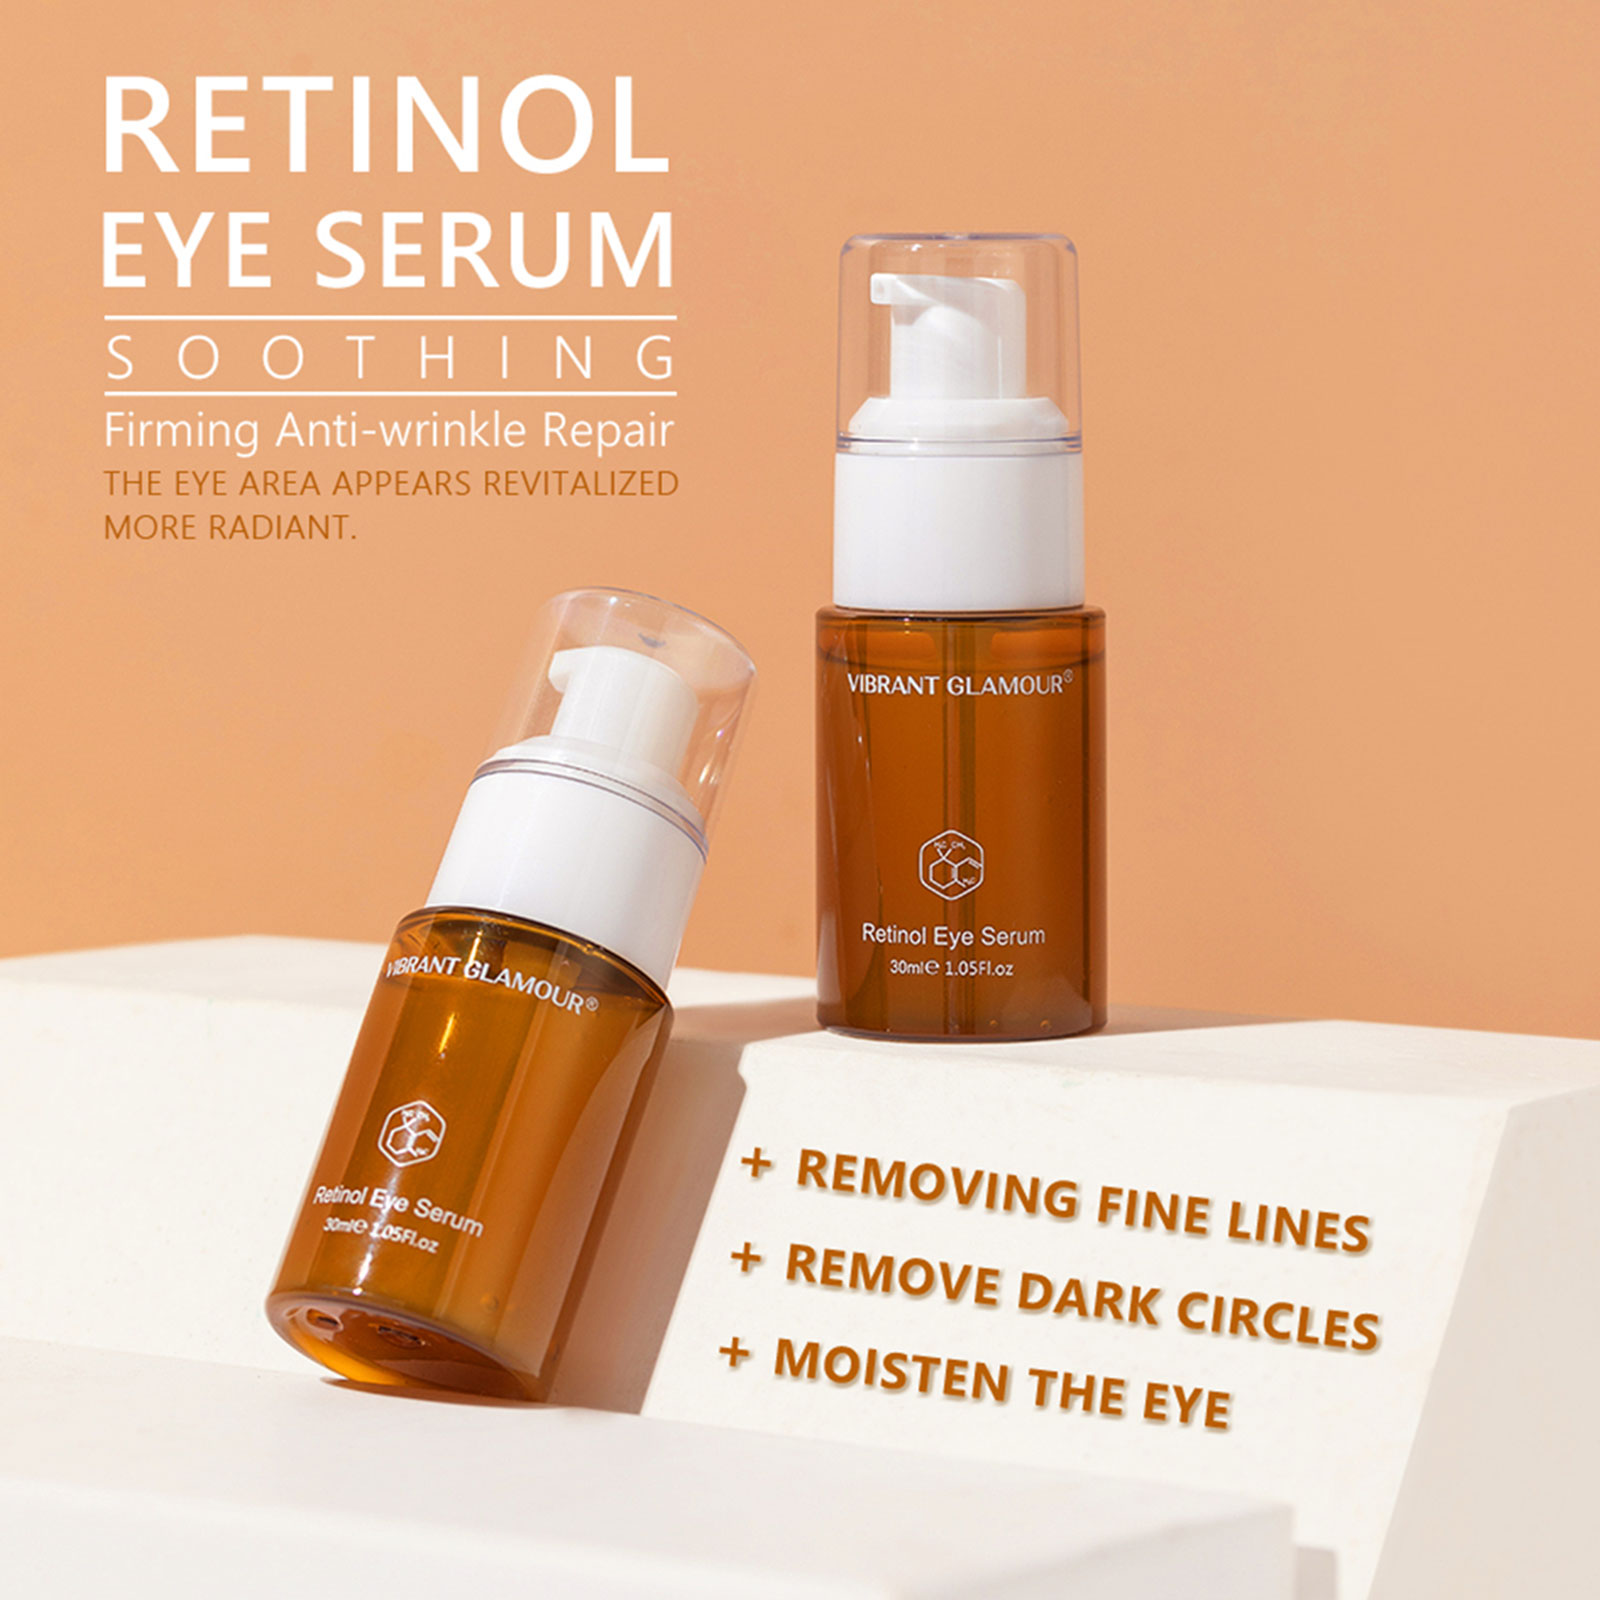 VIBRANT GLAMOUR Retinol Eye Serum Anti-Wrinkle Remove Eye Bags Fade Fine Lines Dark Circles Brighten Whitening Eye Care 30ml